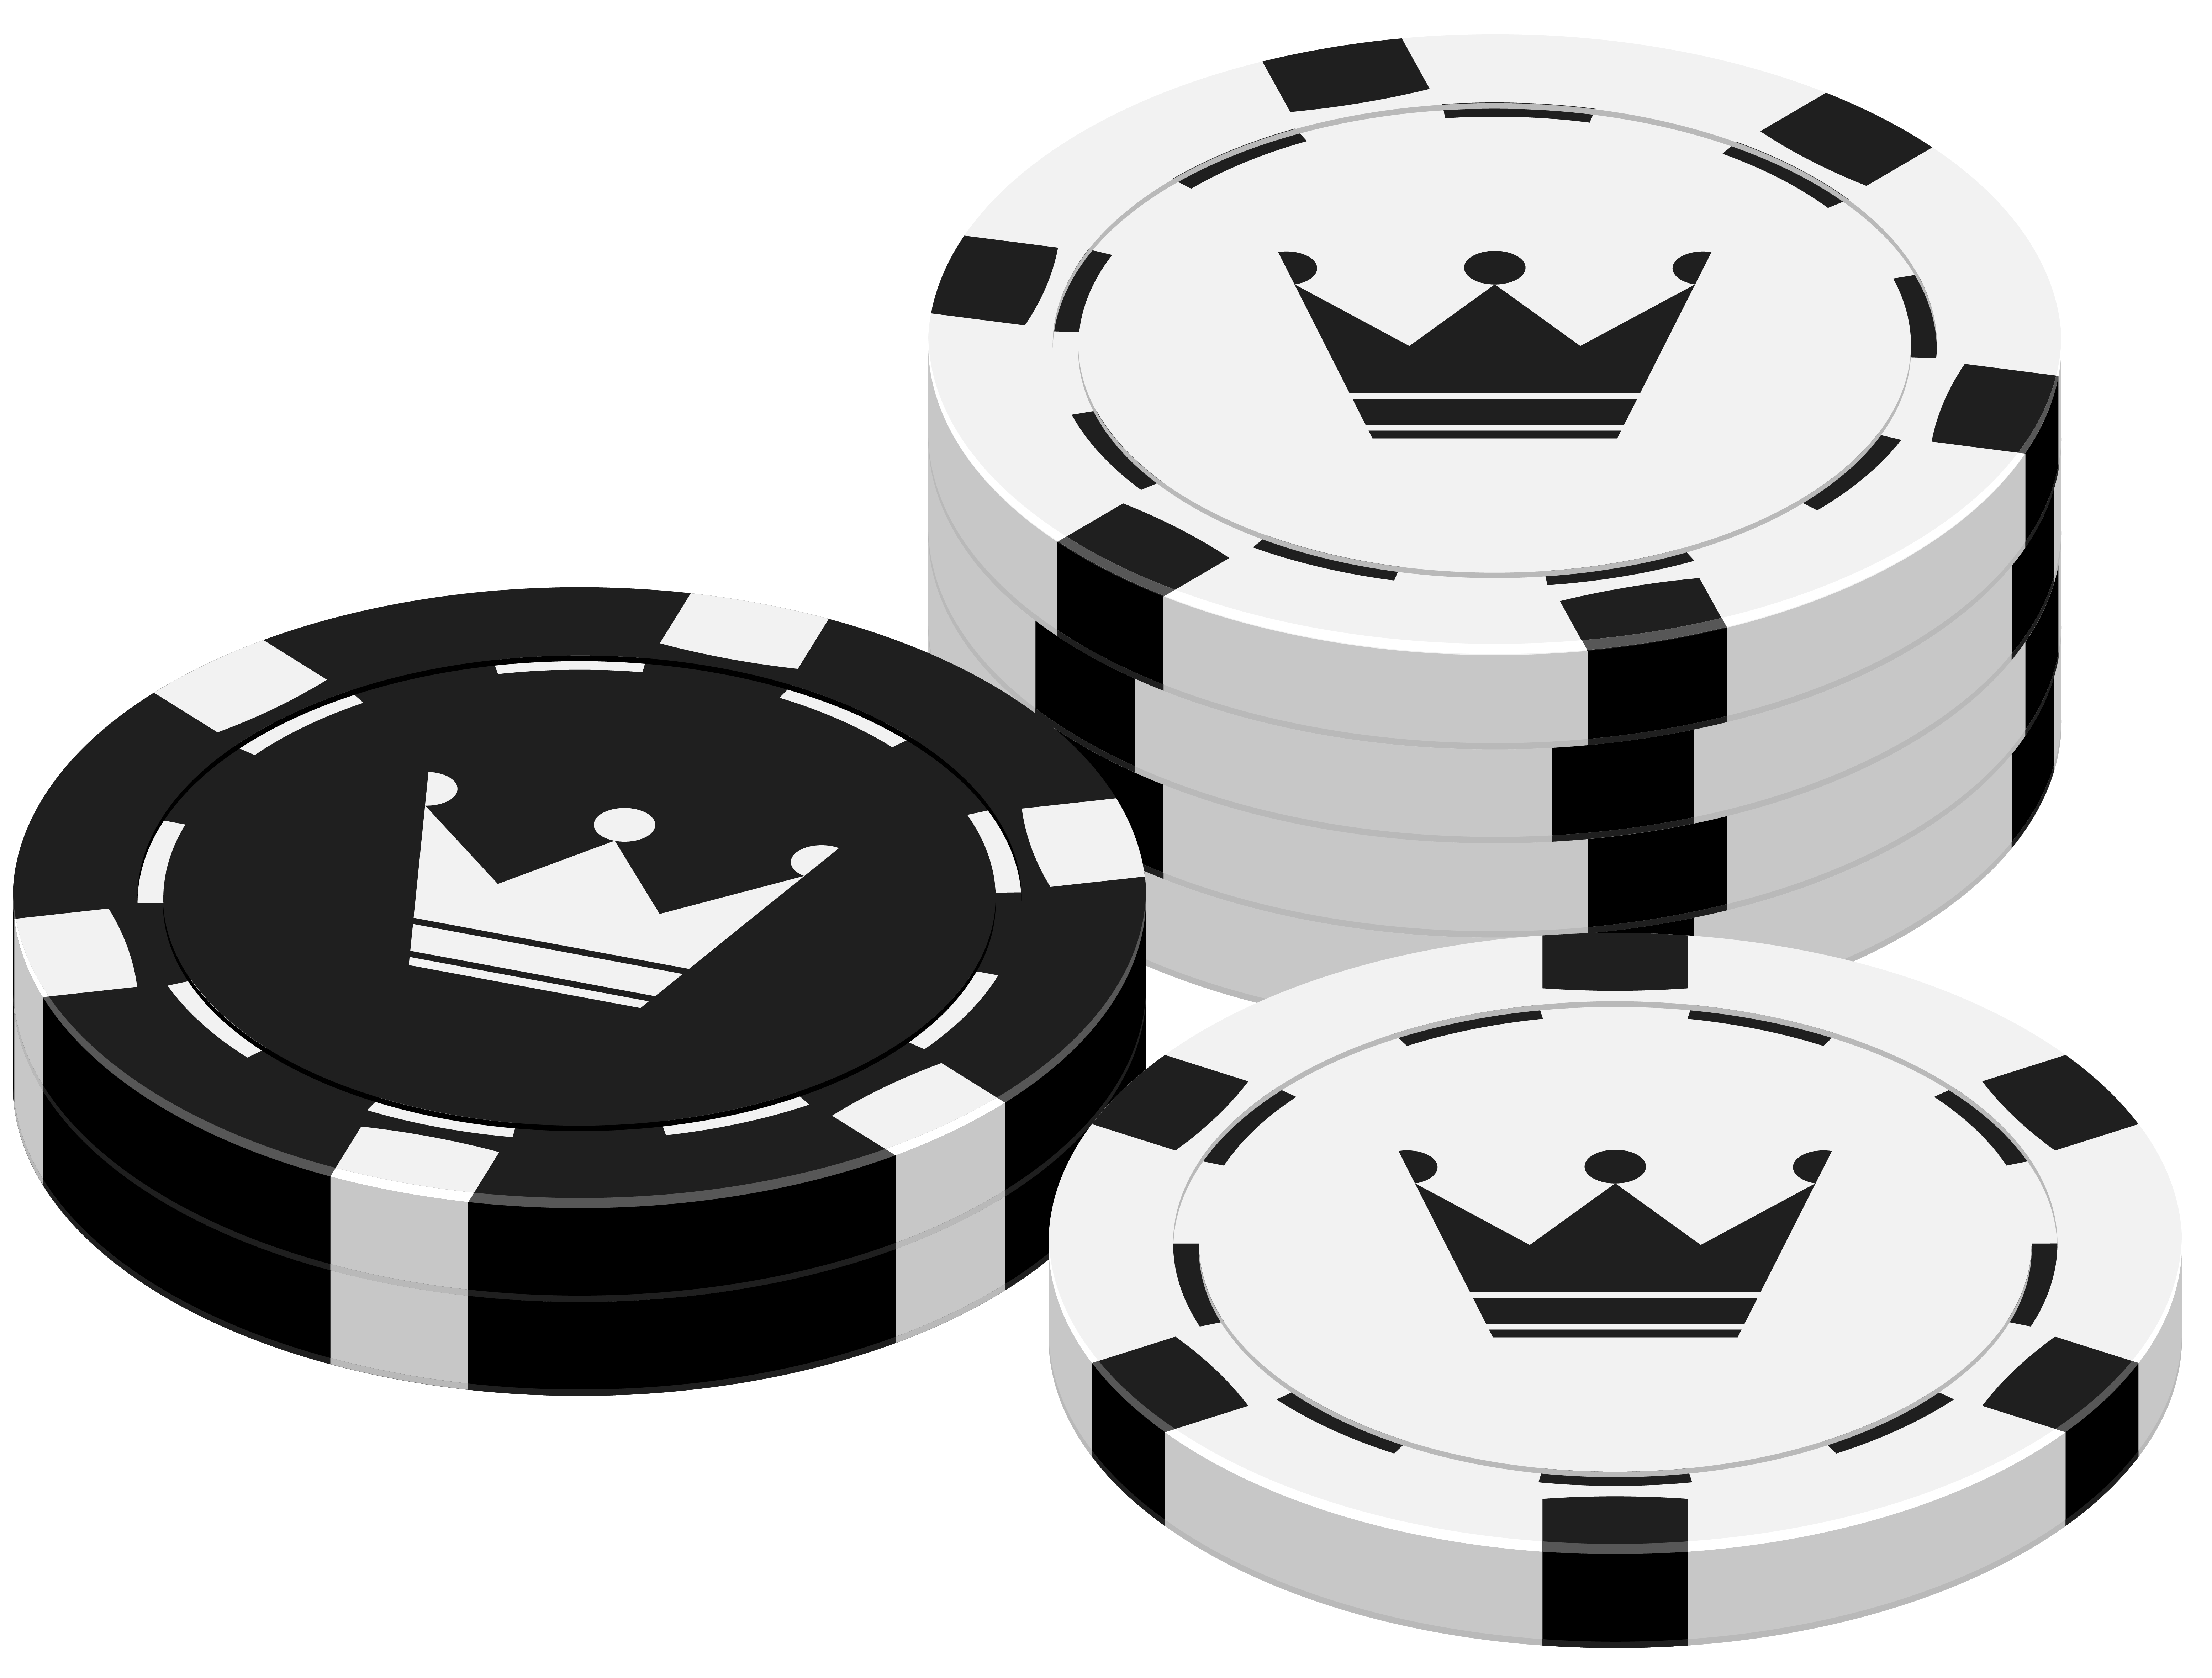 Casino chips png best. Game clipart portable